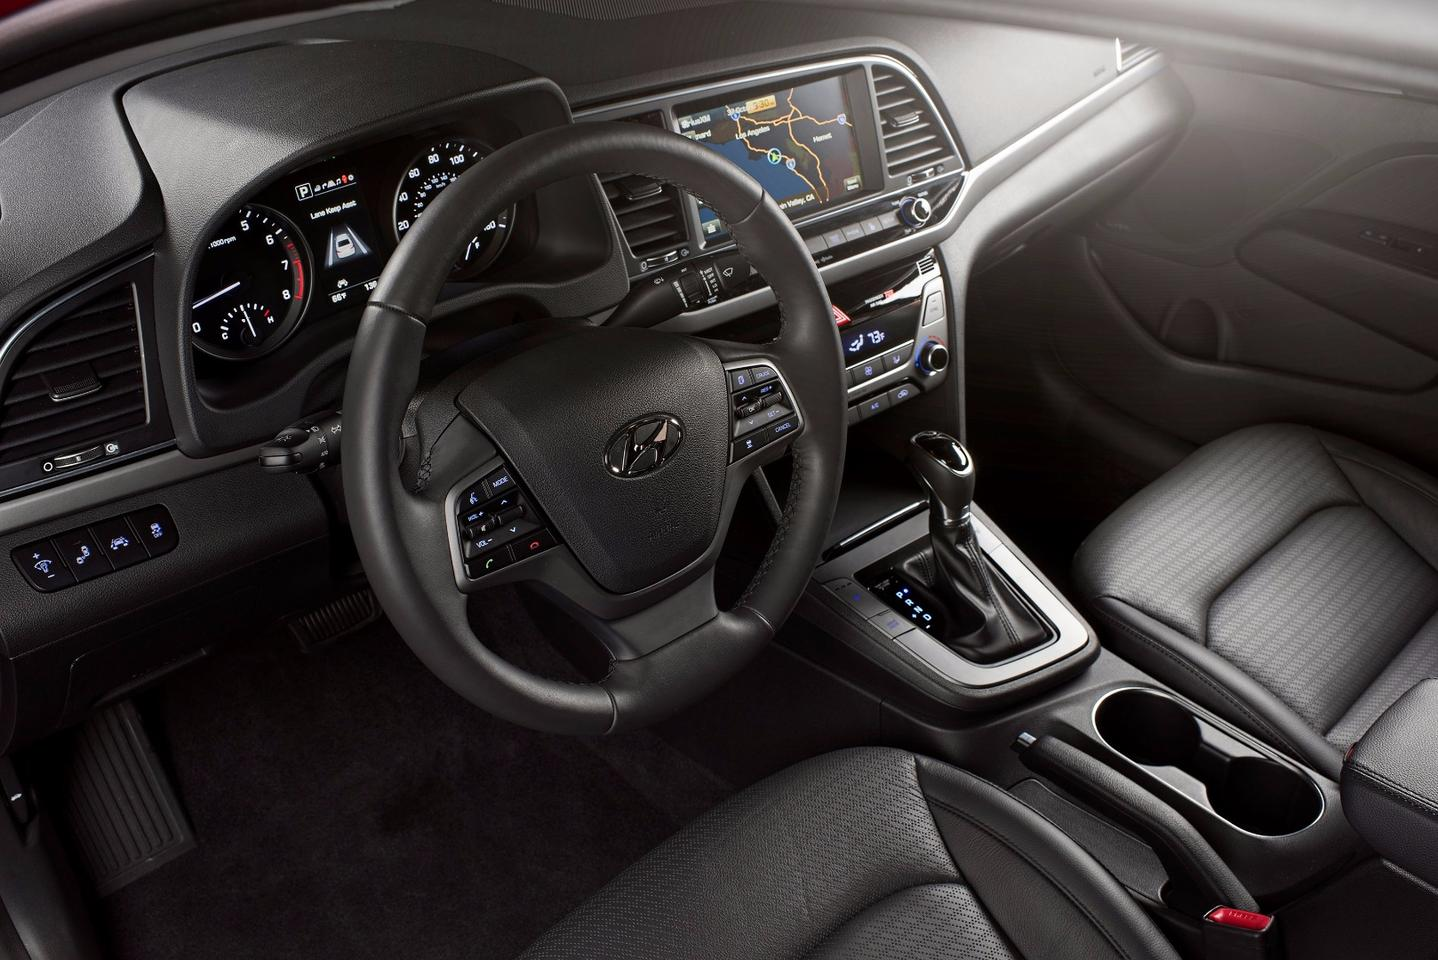 A very measurable change inside the 2017 Hyundai Elantra is with its equipment layout and overall refinement